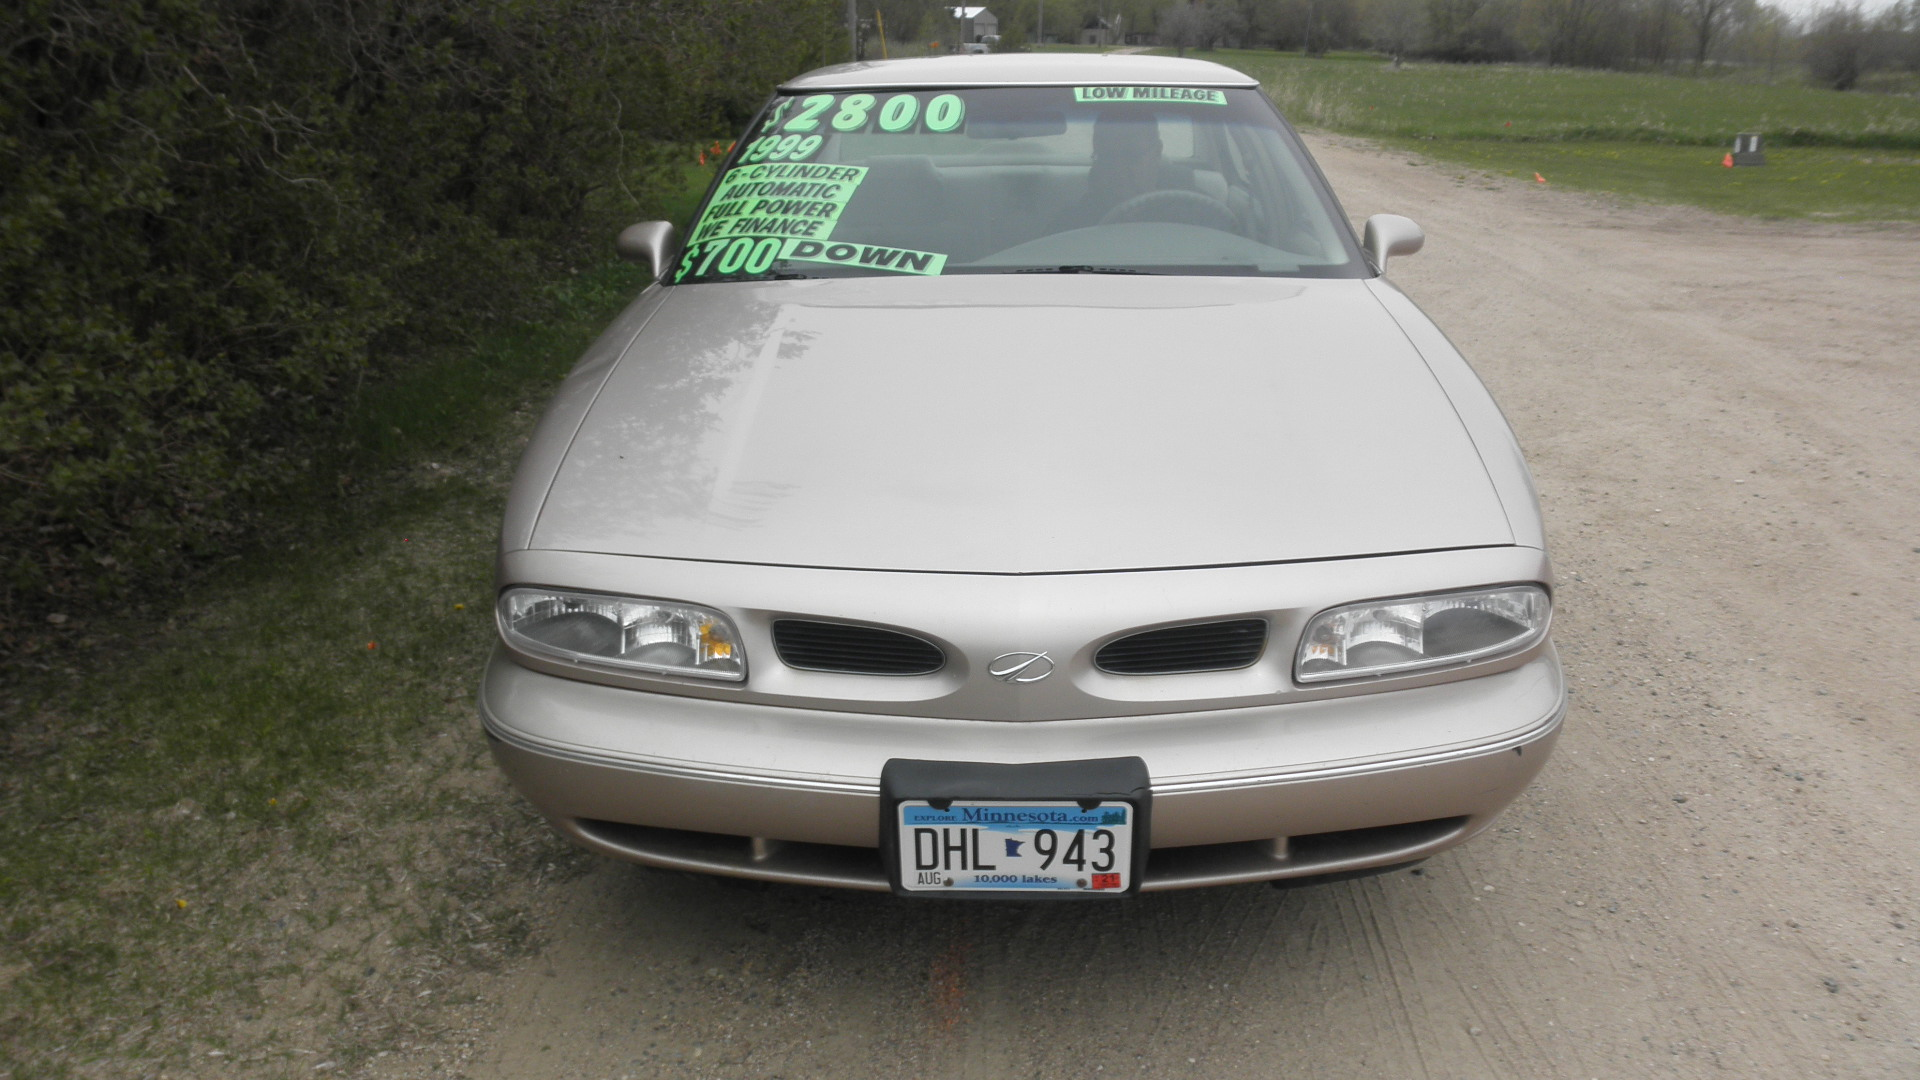 1999 Olds Eighty-eight